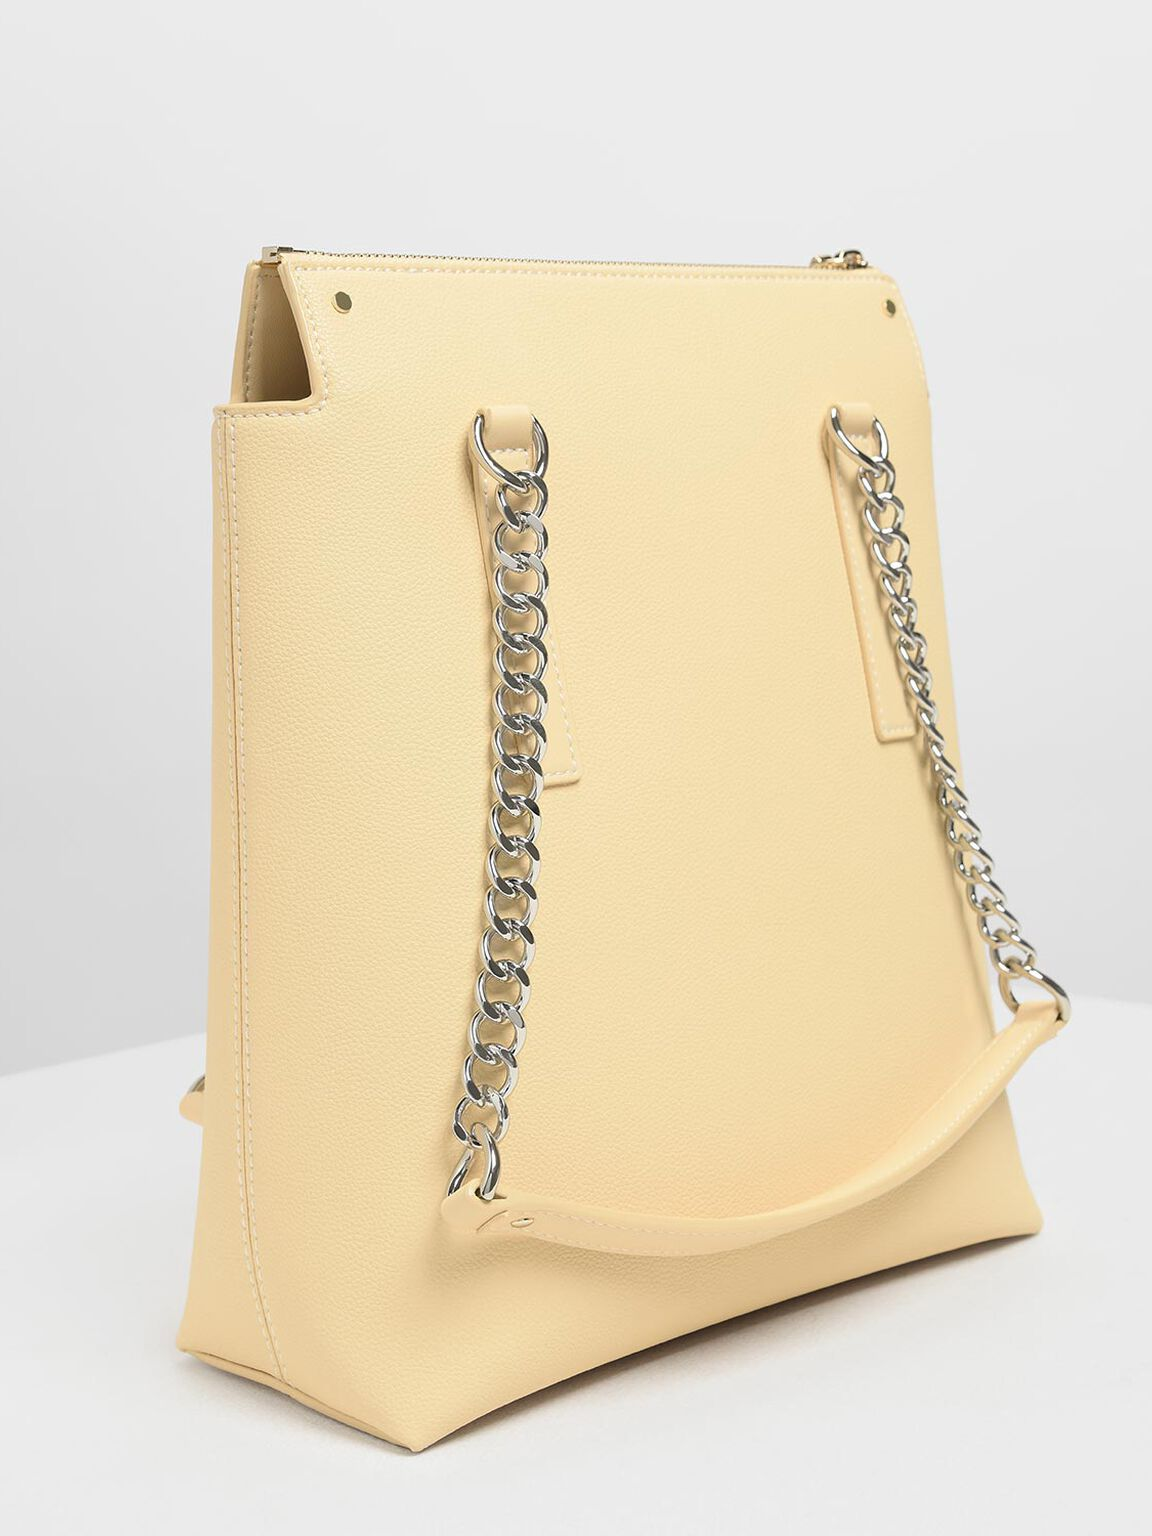 Long Chain Tote Bag, Yellow, hi-res